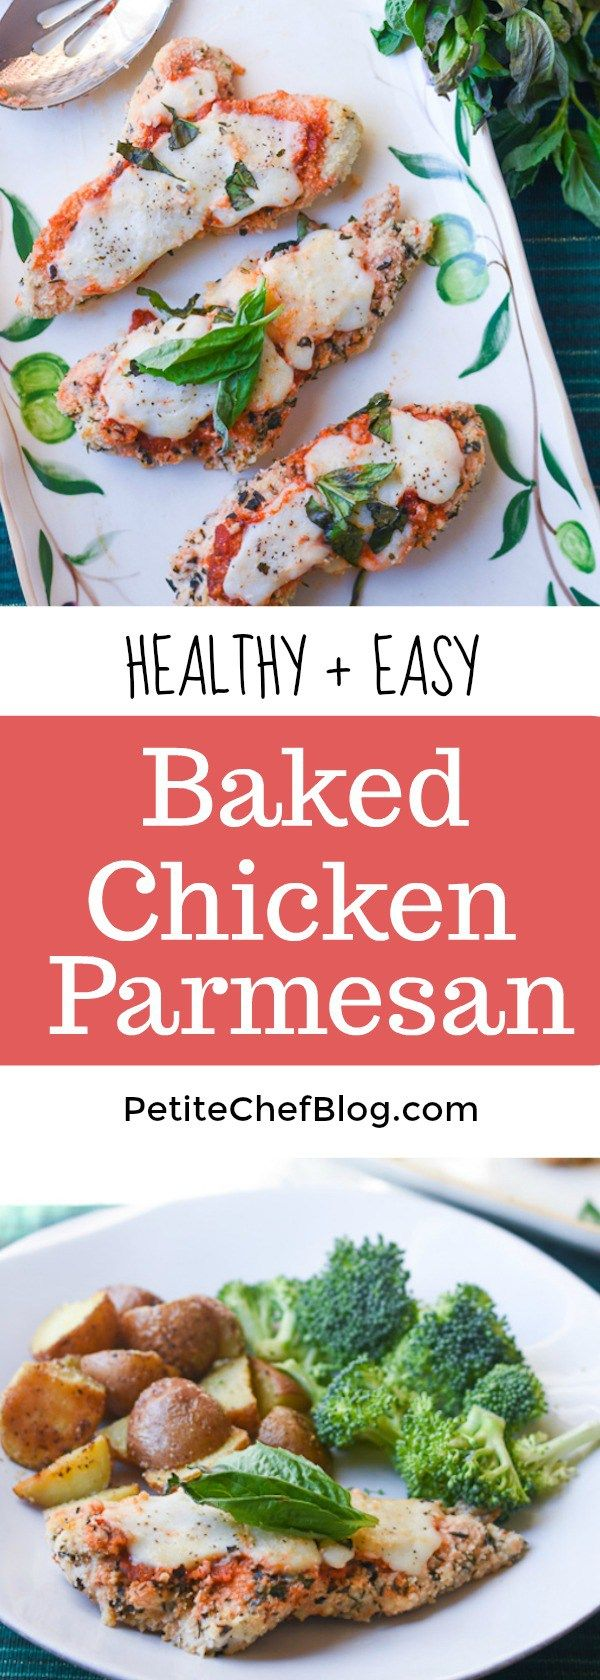 Healthy Baked Chicken Parmesan | Baked, not fried. Topped with classic tomato sauce, fresh mozzarella + basil. | PETITECHEFBLOG.COM